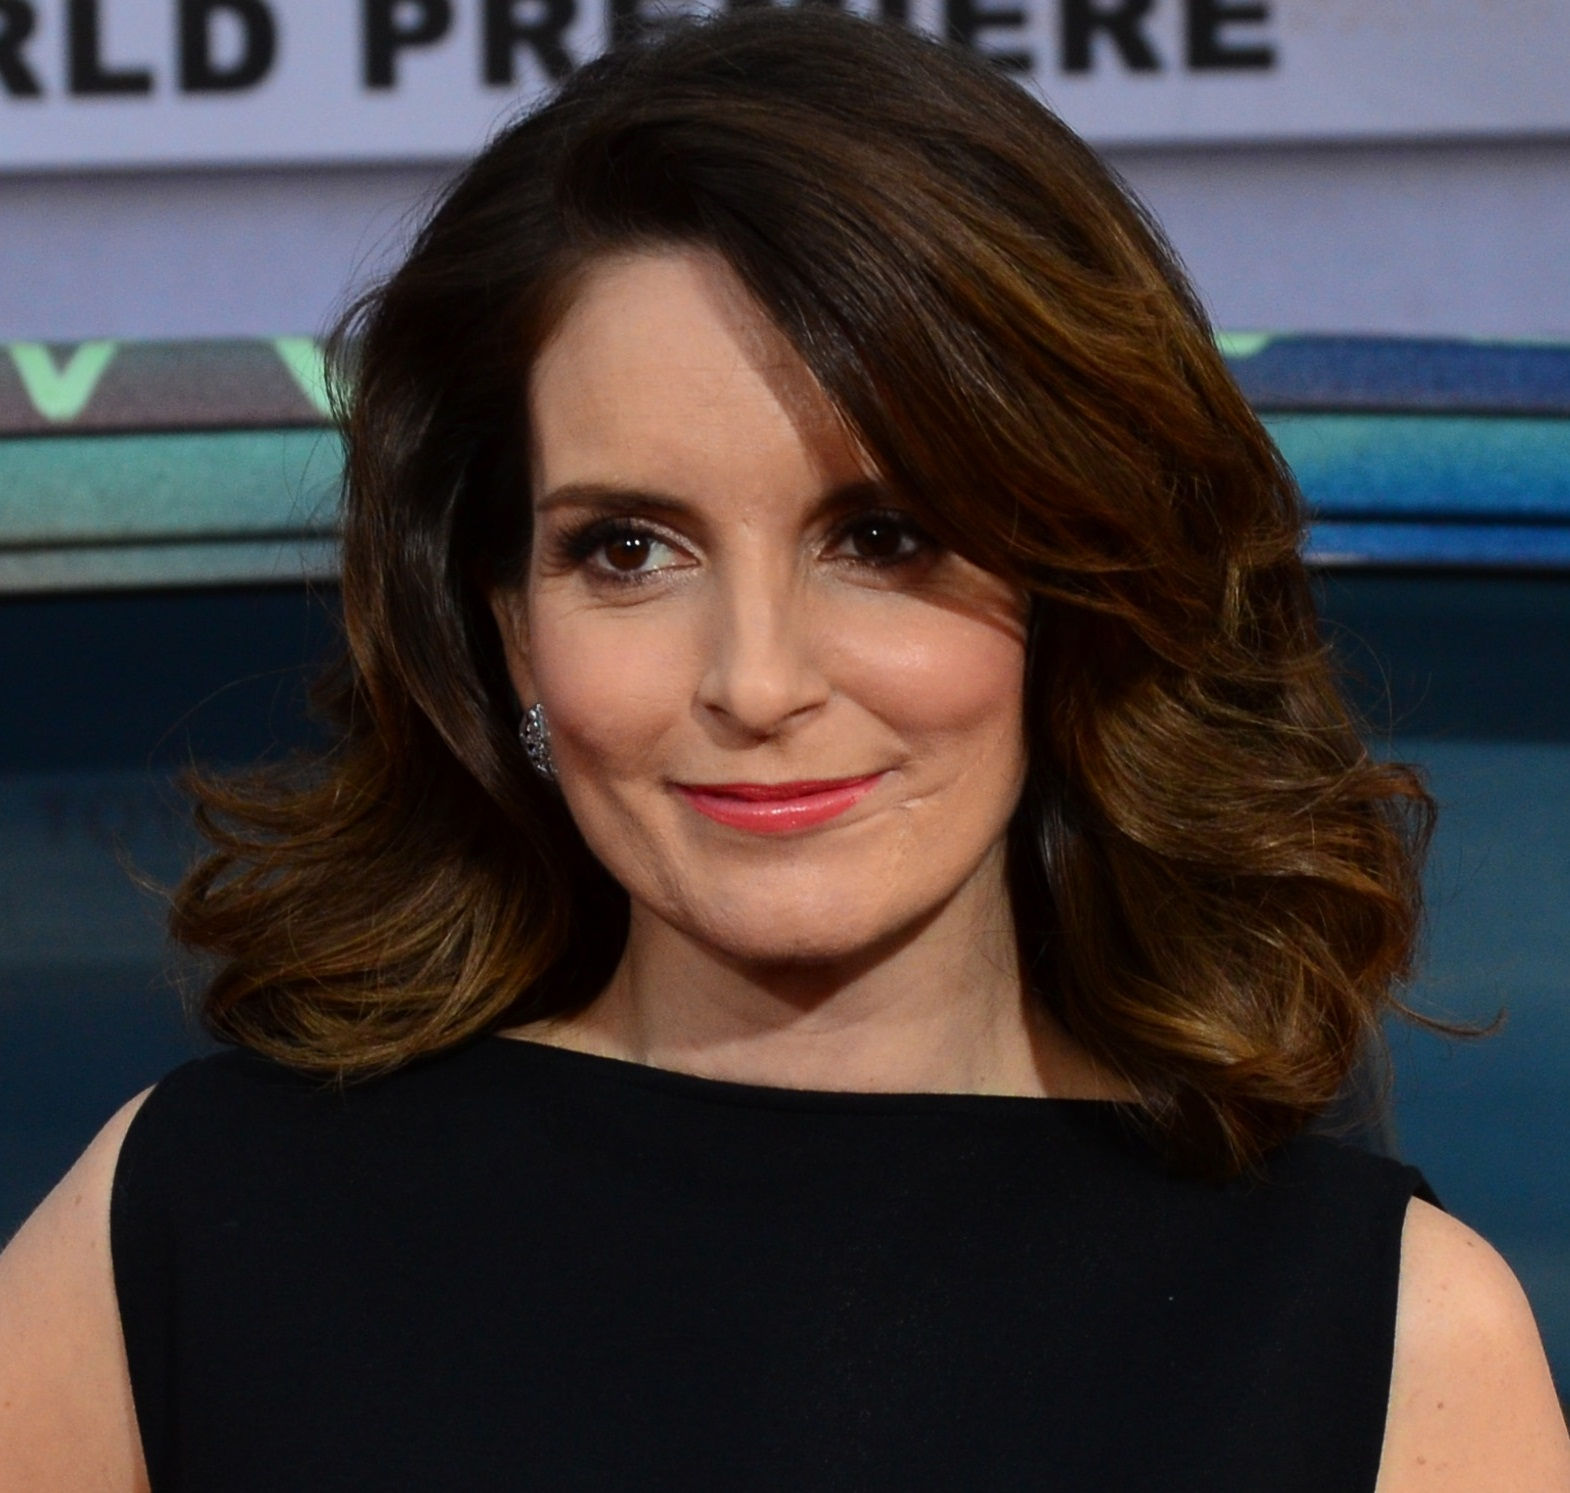 Photo of Tina Fey: American comedian, writer, producer and actress